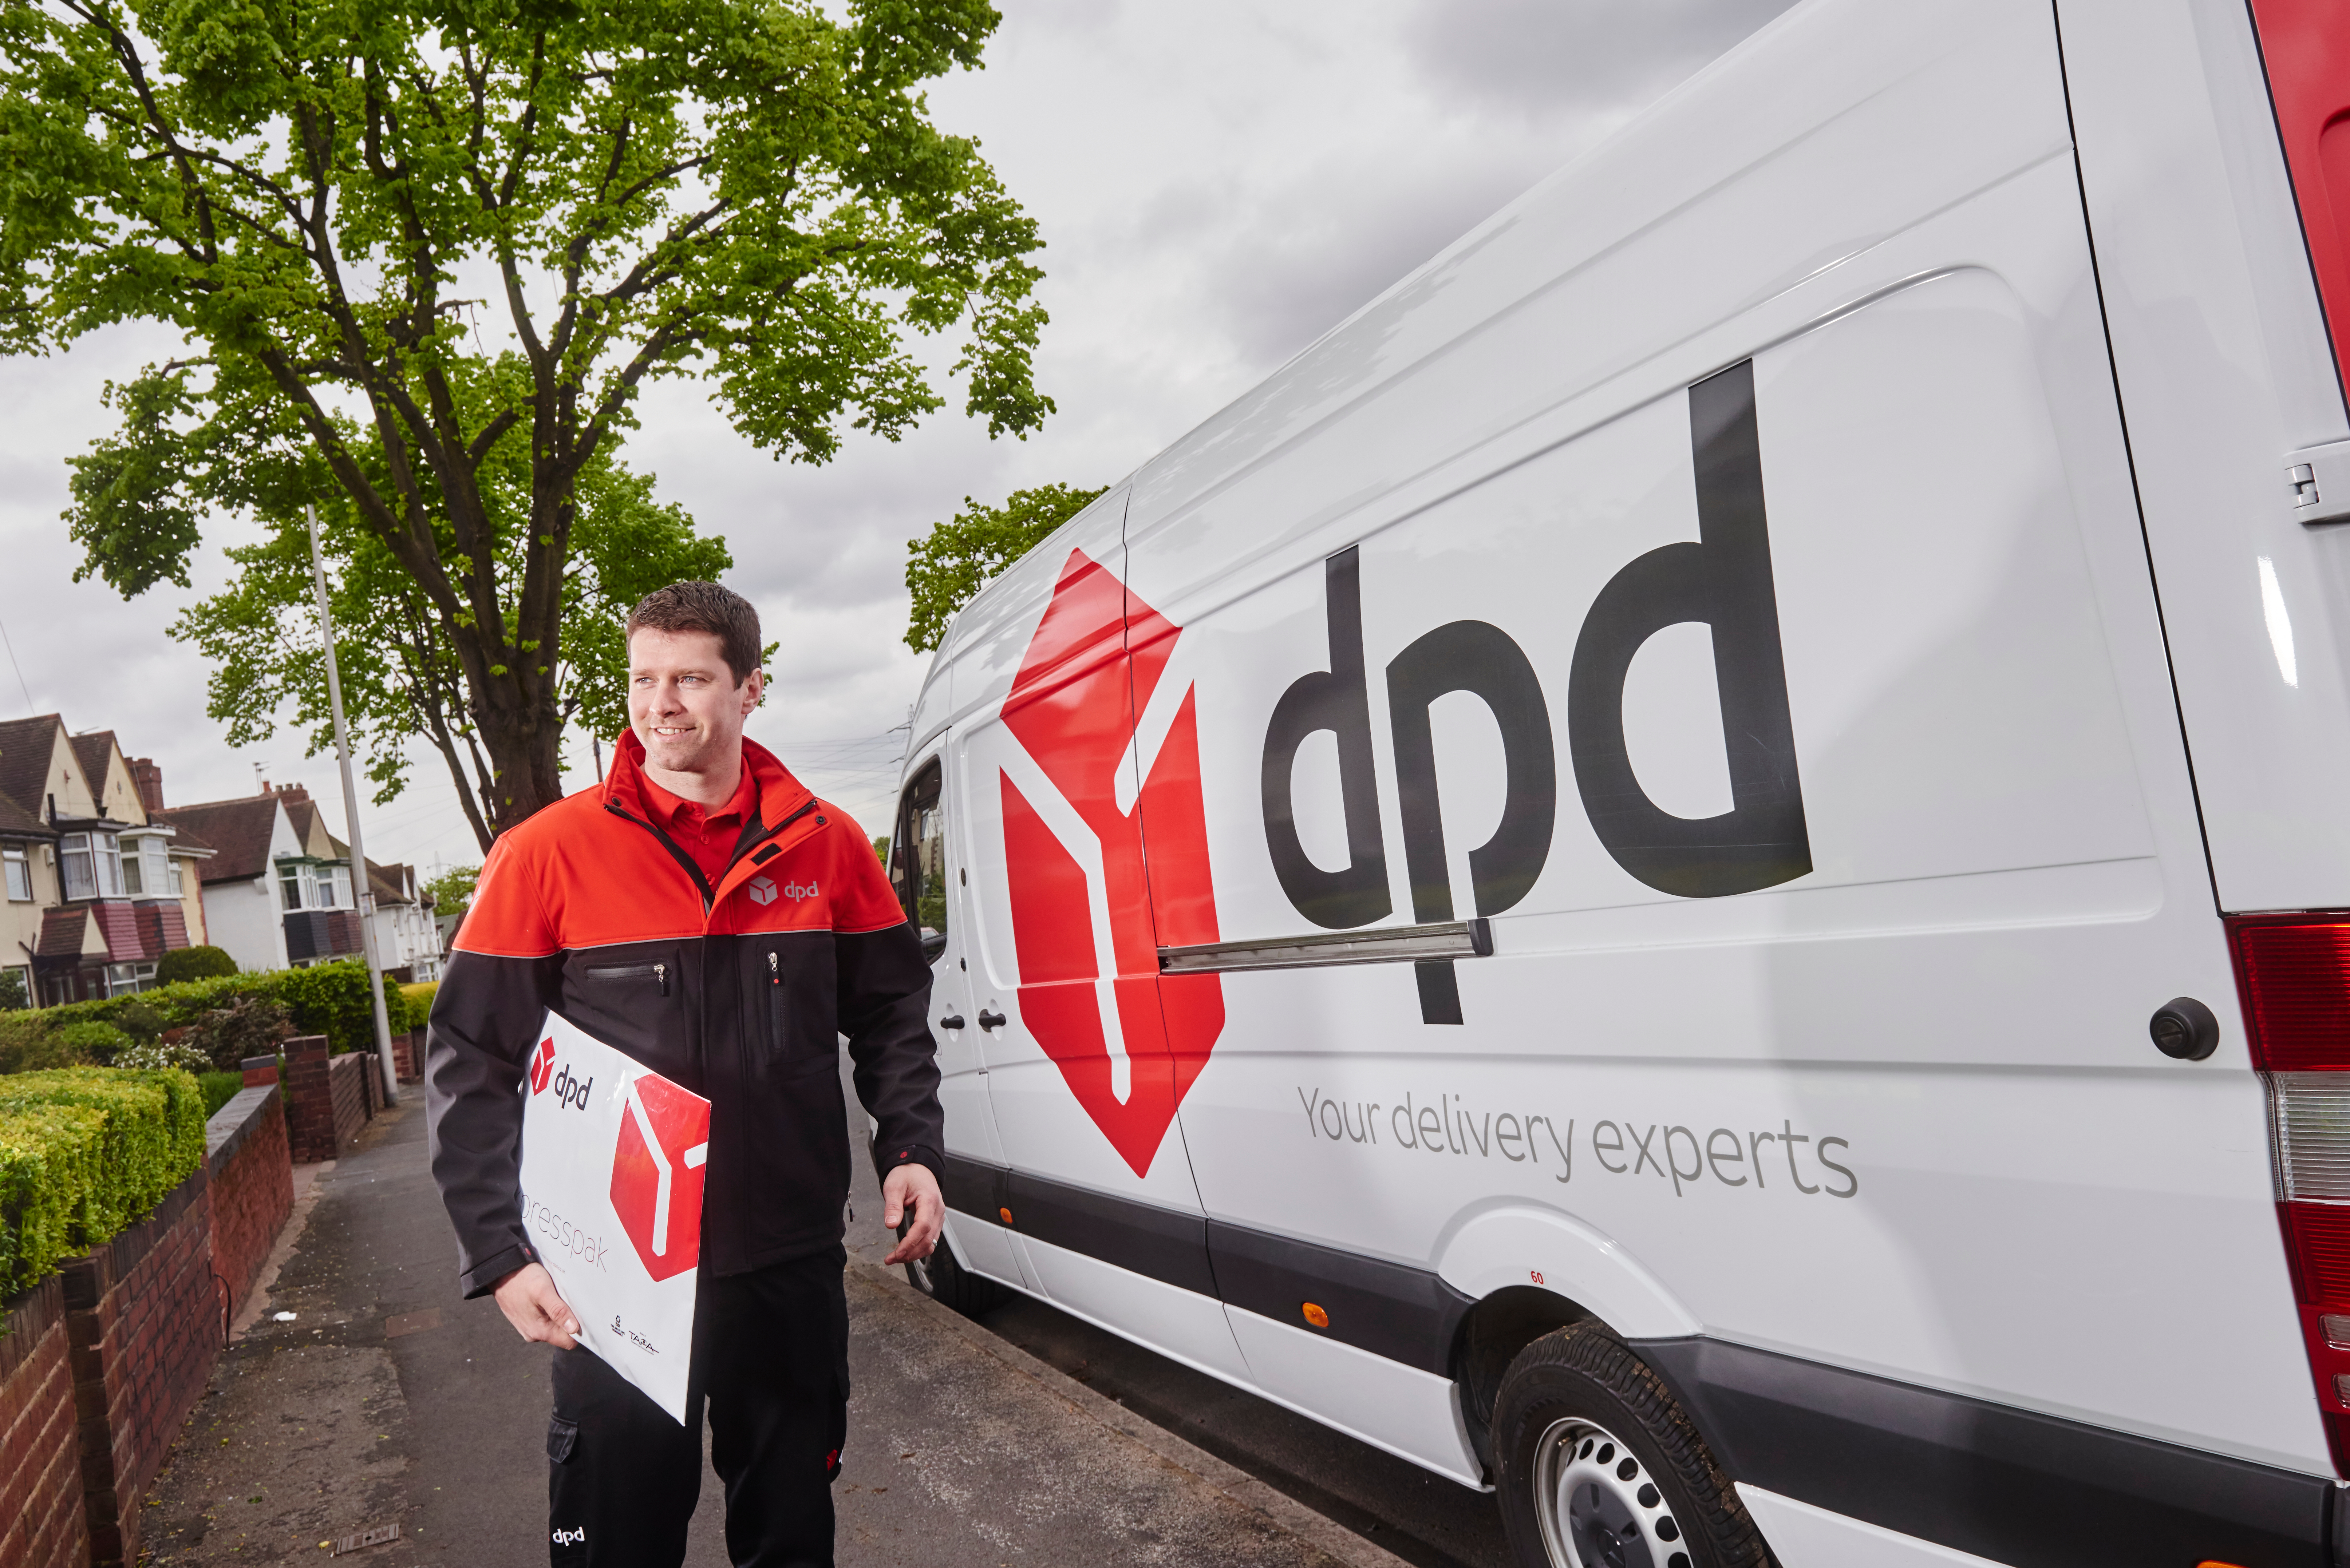 DPD UK CEO Dwain McDonald